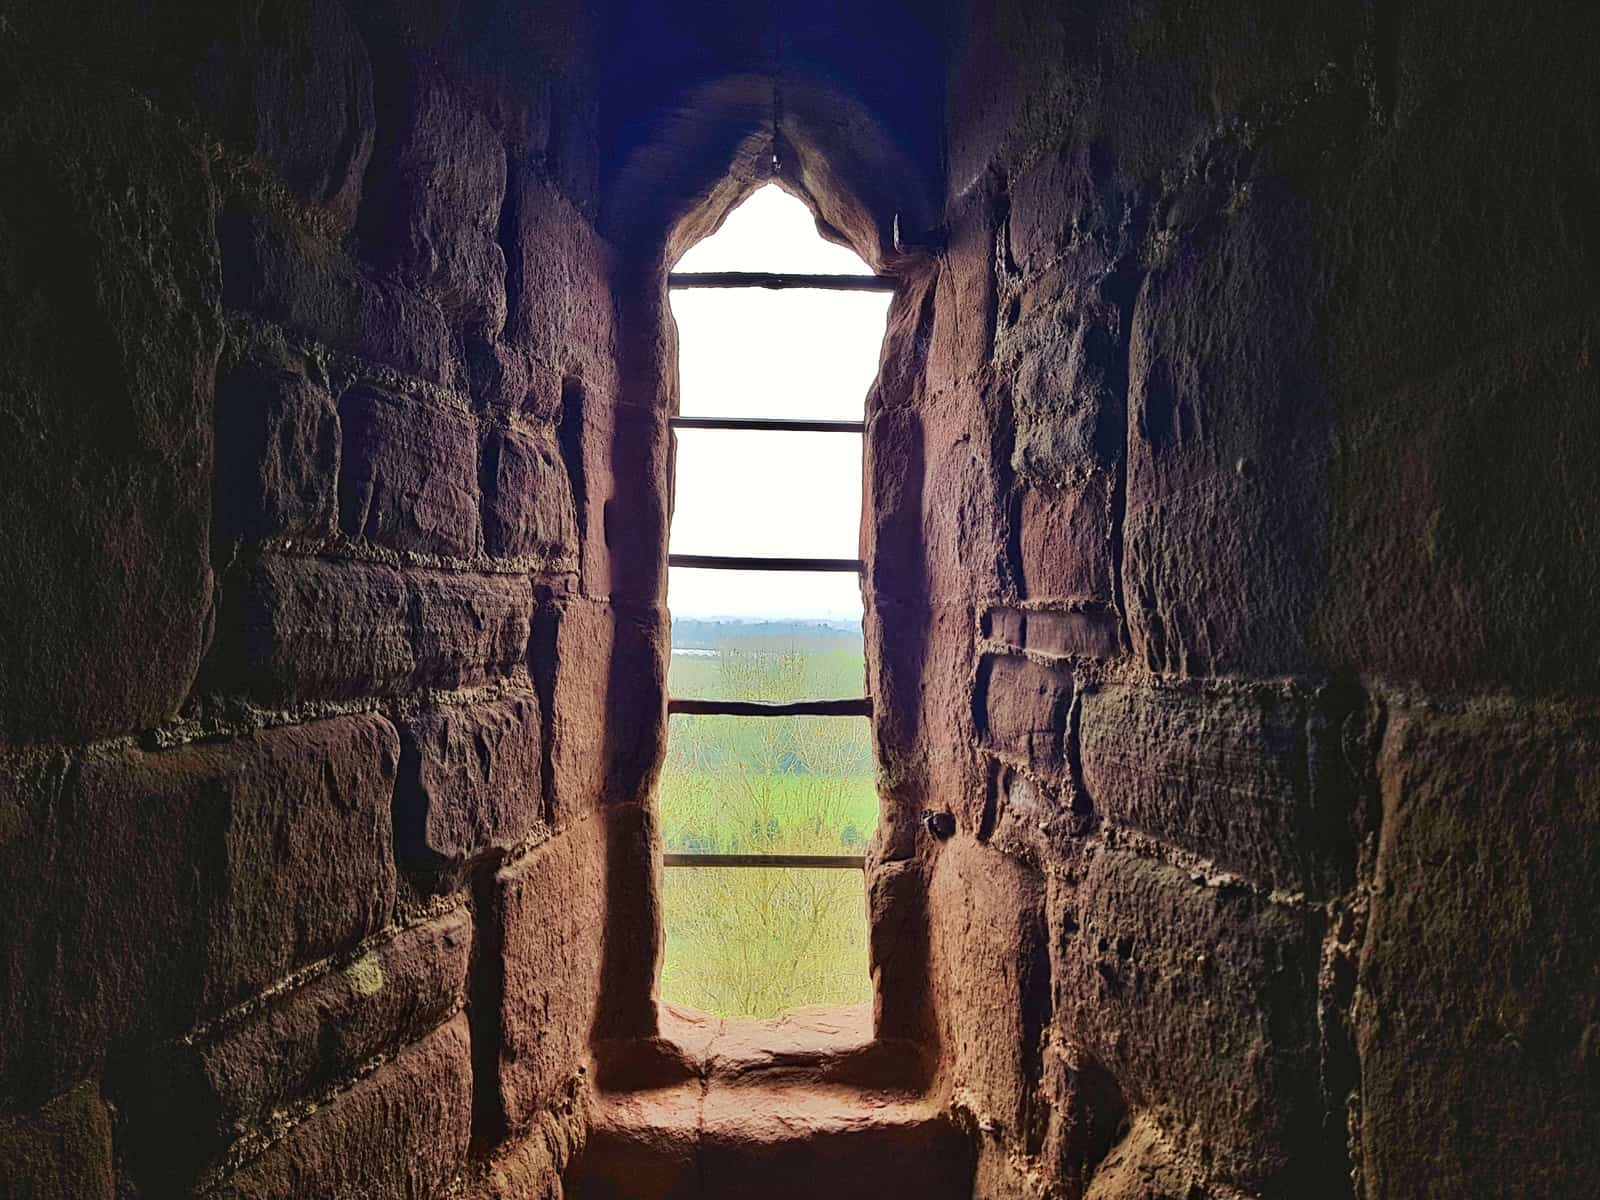 murder hole window at Goodrich Castle with countryside beyond